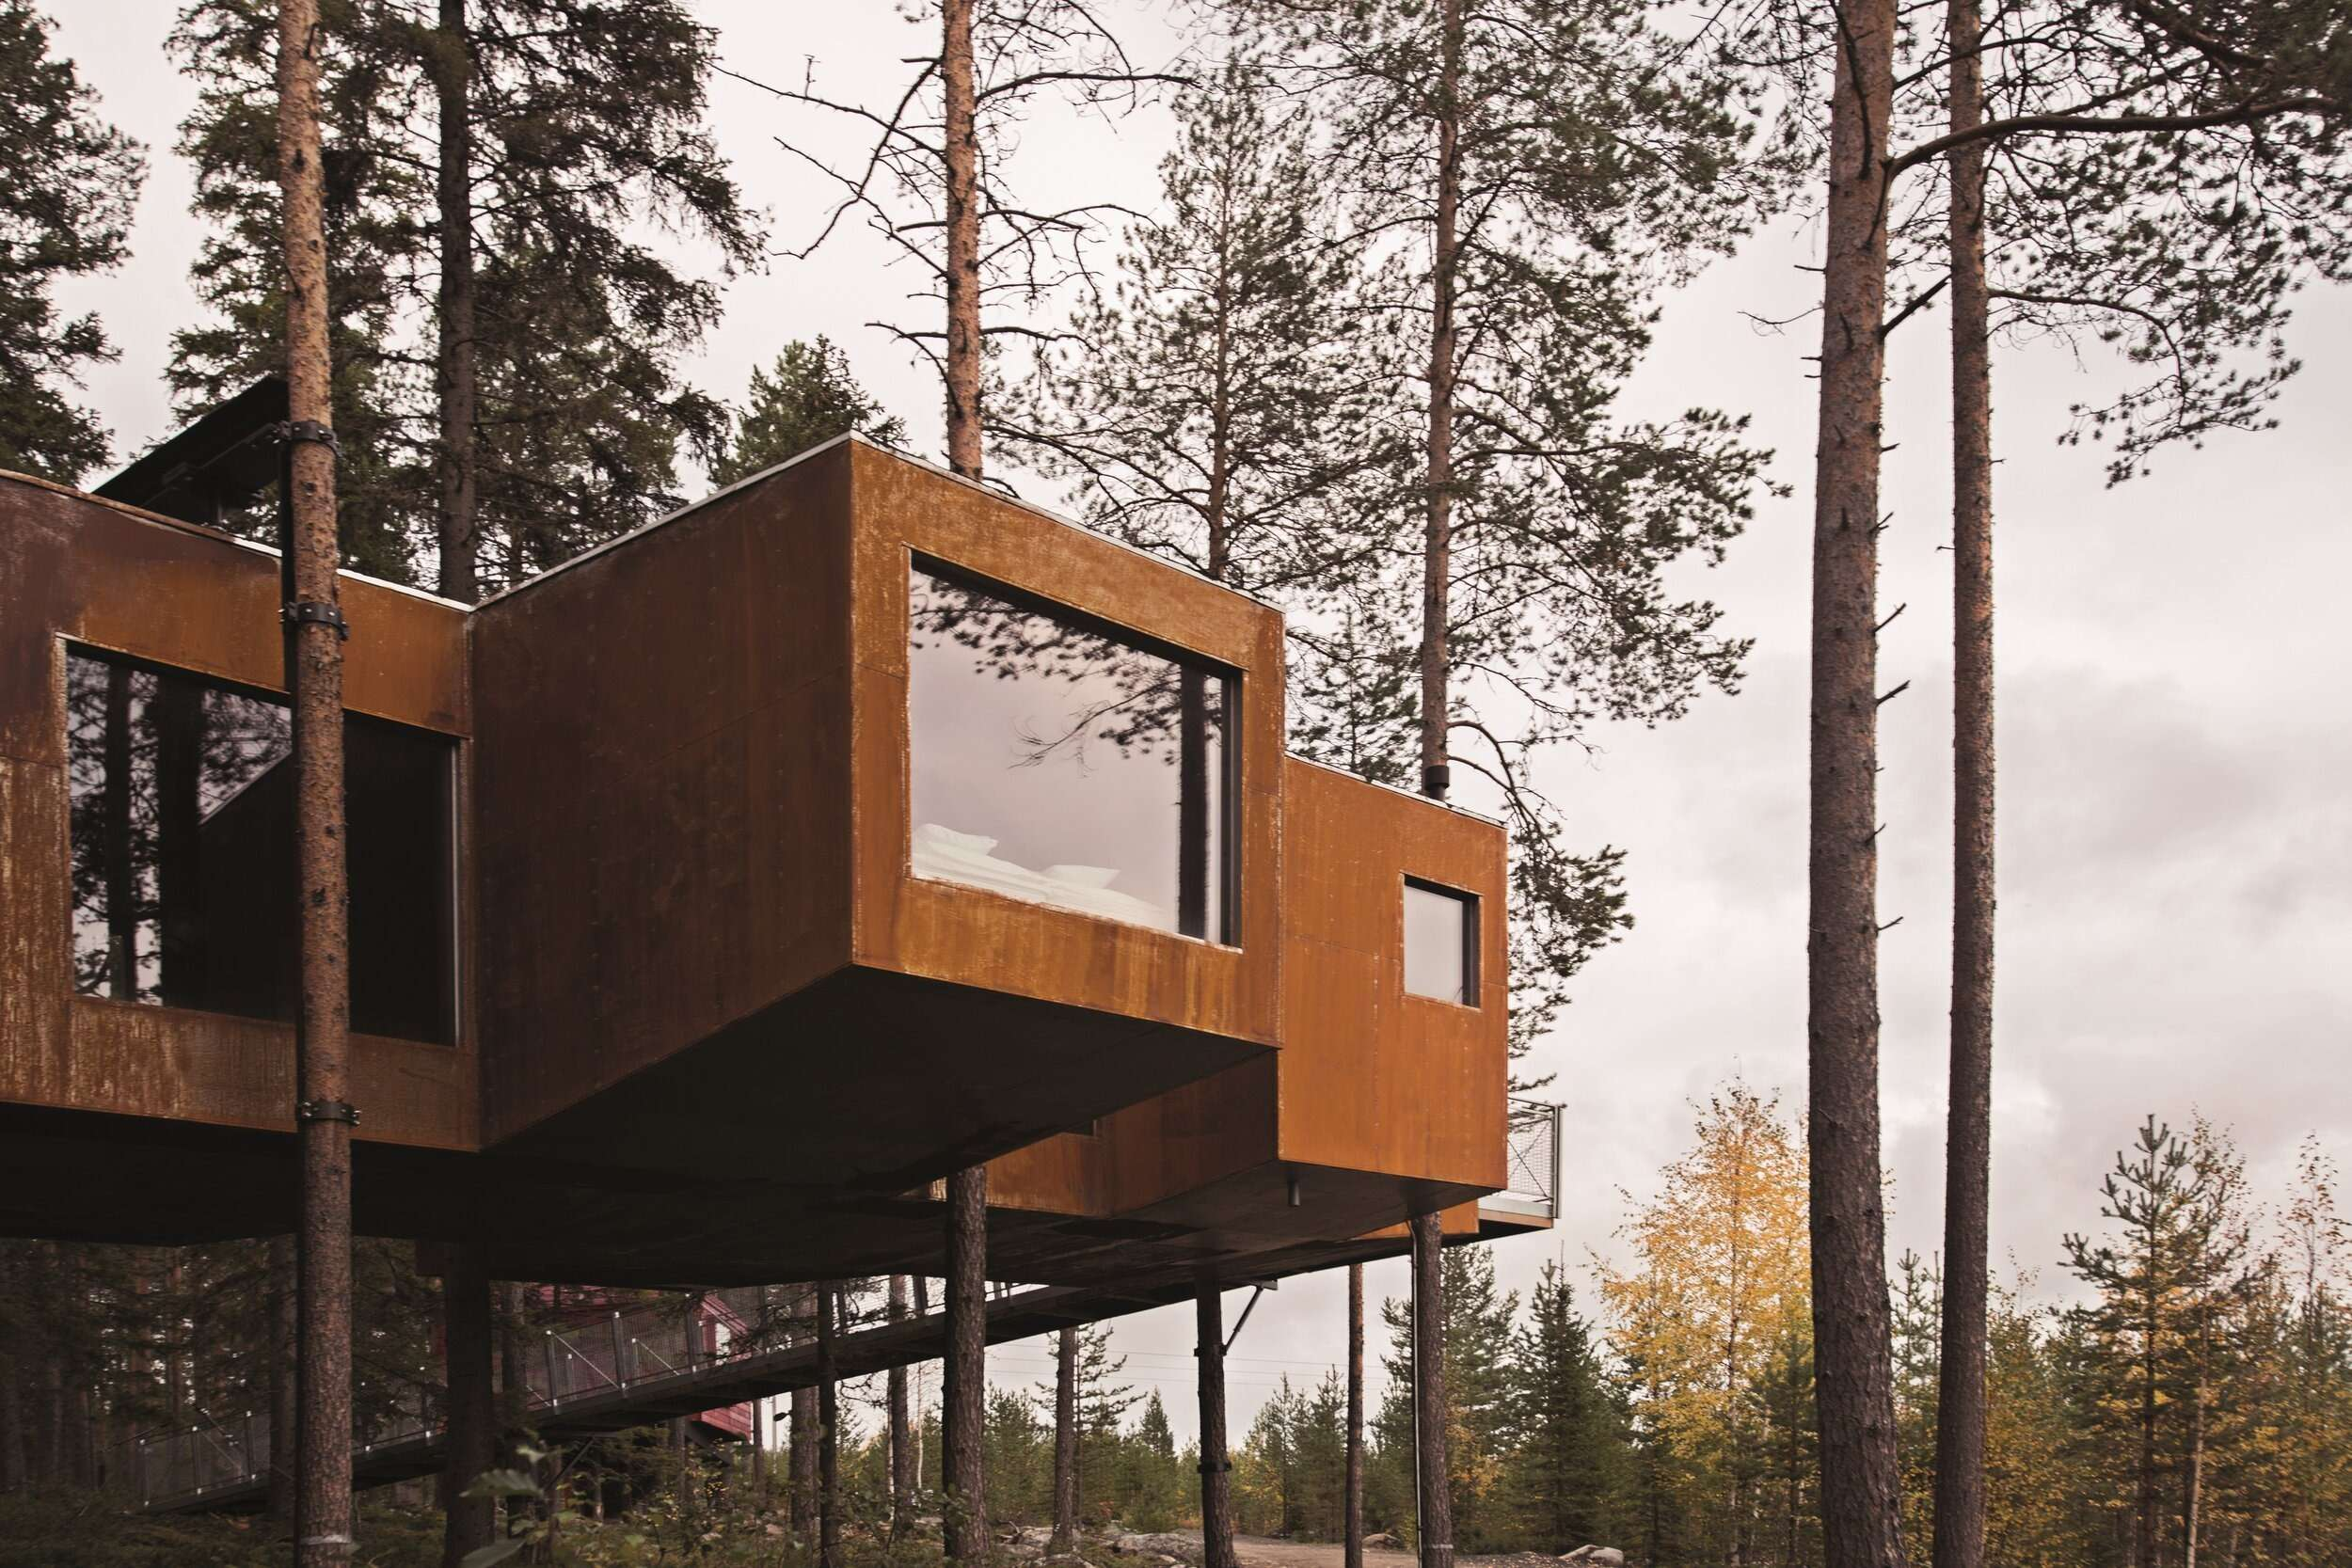 two brown containers suspended on vertical beams amongst trees at Treehotel